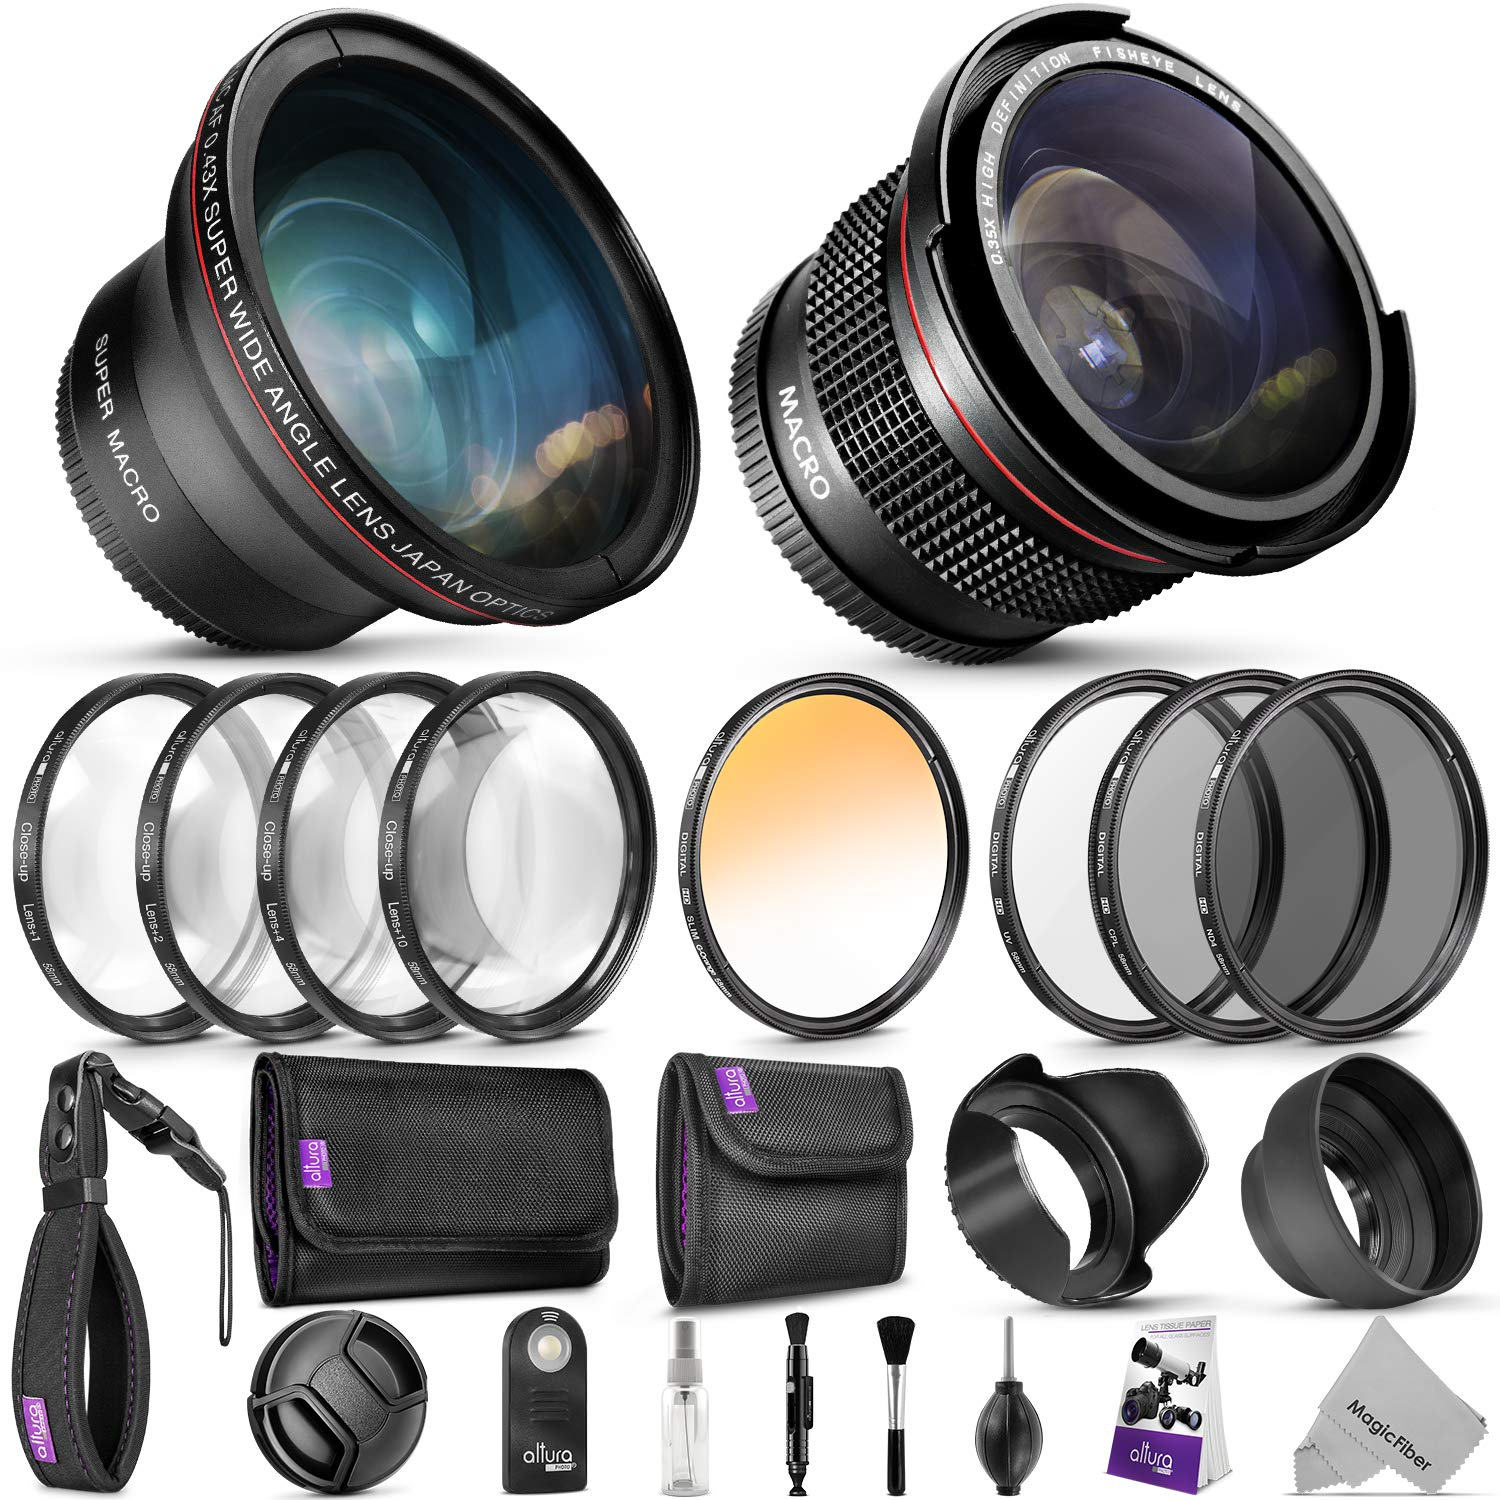 58mm Altura Photo Professional Accessory Kit for Canon EOS Rebel DSLR - Bundle with Wide Angle & Fisheye Lens, Filters Kit (Macro Close-Up Set, UV, CPL, ND4, Color) Remote Control & More by Goja